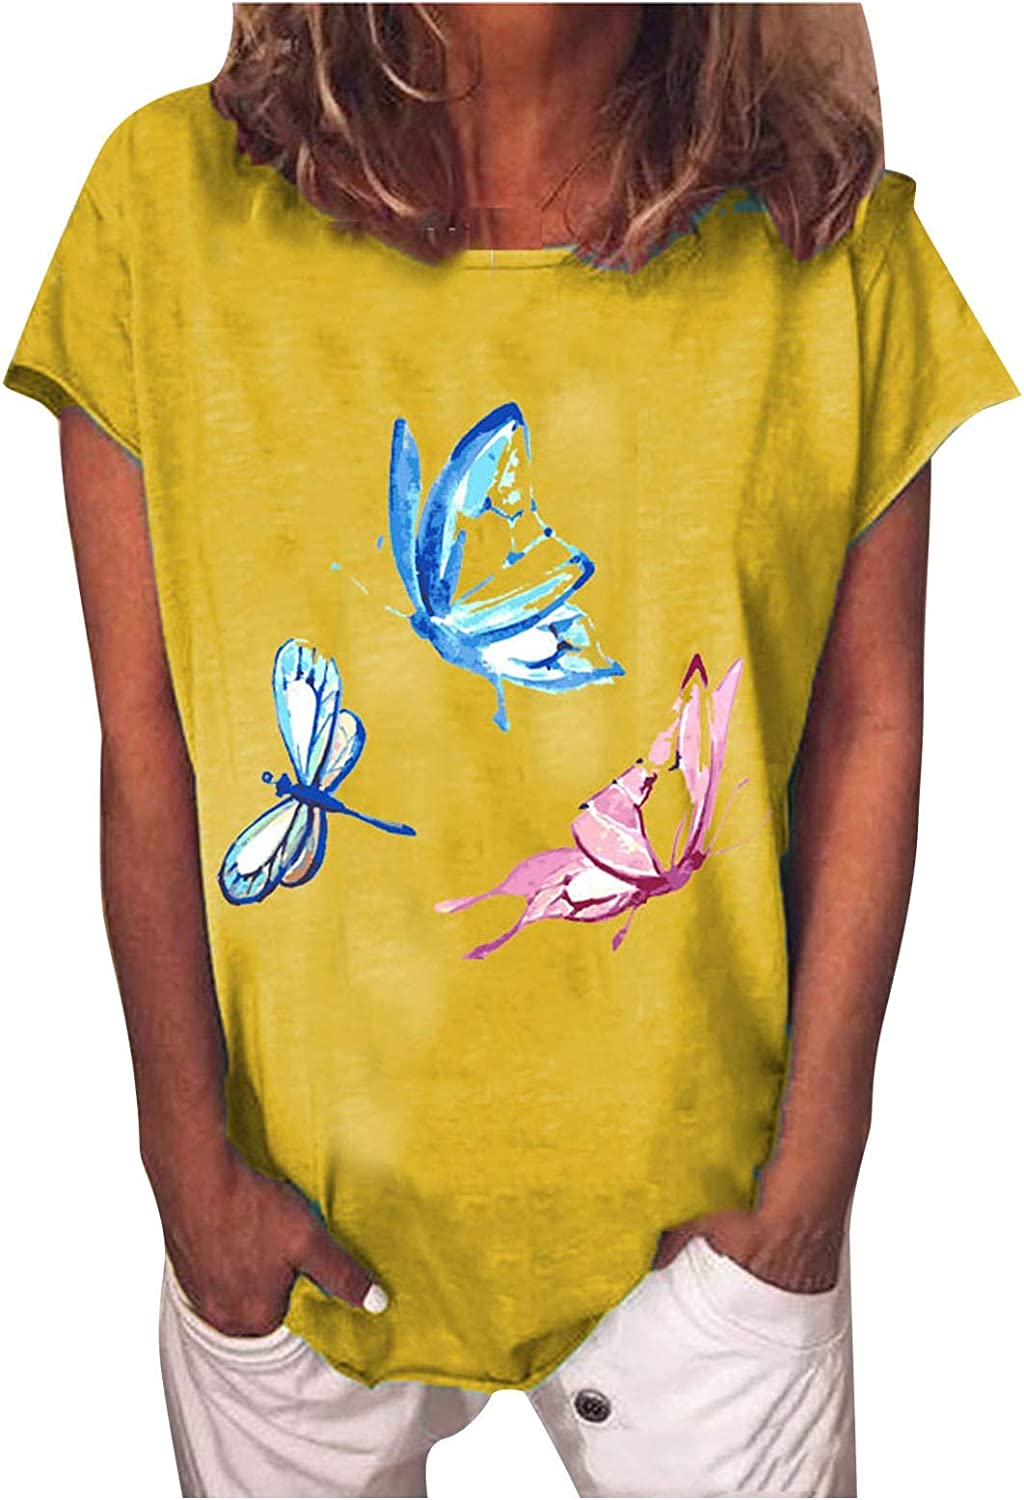 FABIURT Women Short Sleeve Tops,Womens Vintage Butterfly Gardient Printed Crew Neck T Shirts Summer Casual Blouse Tops